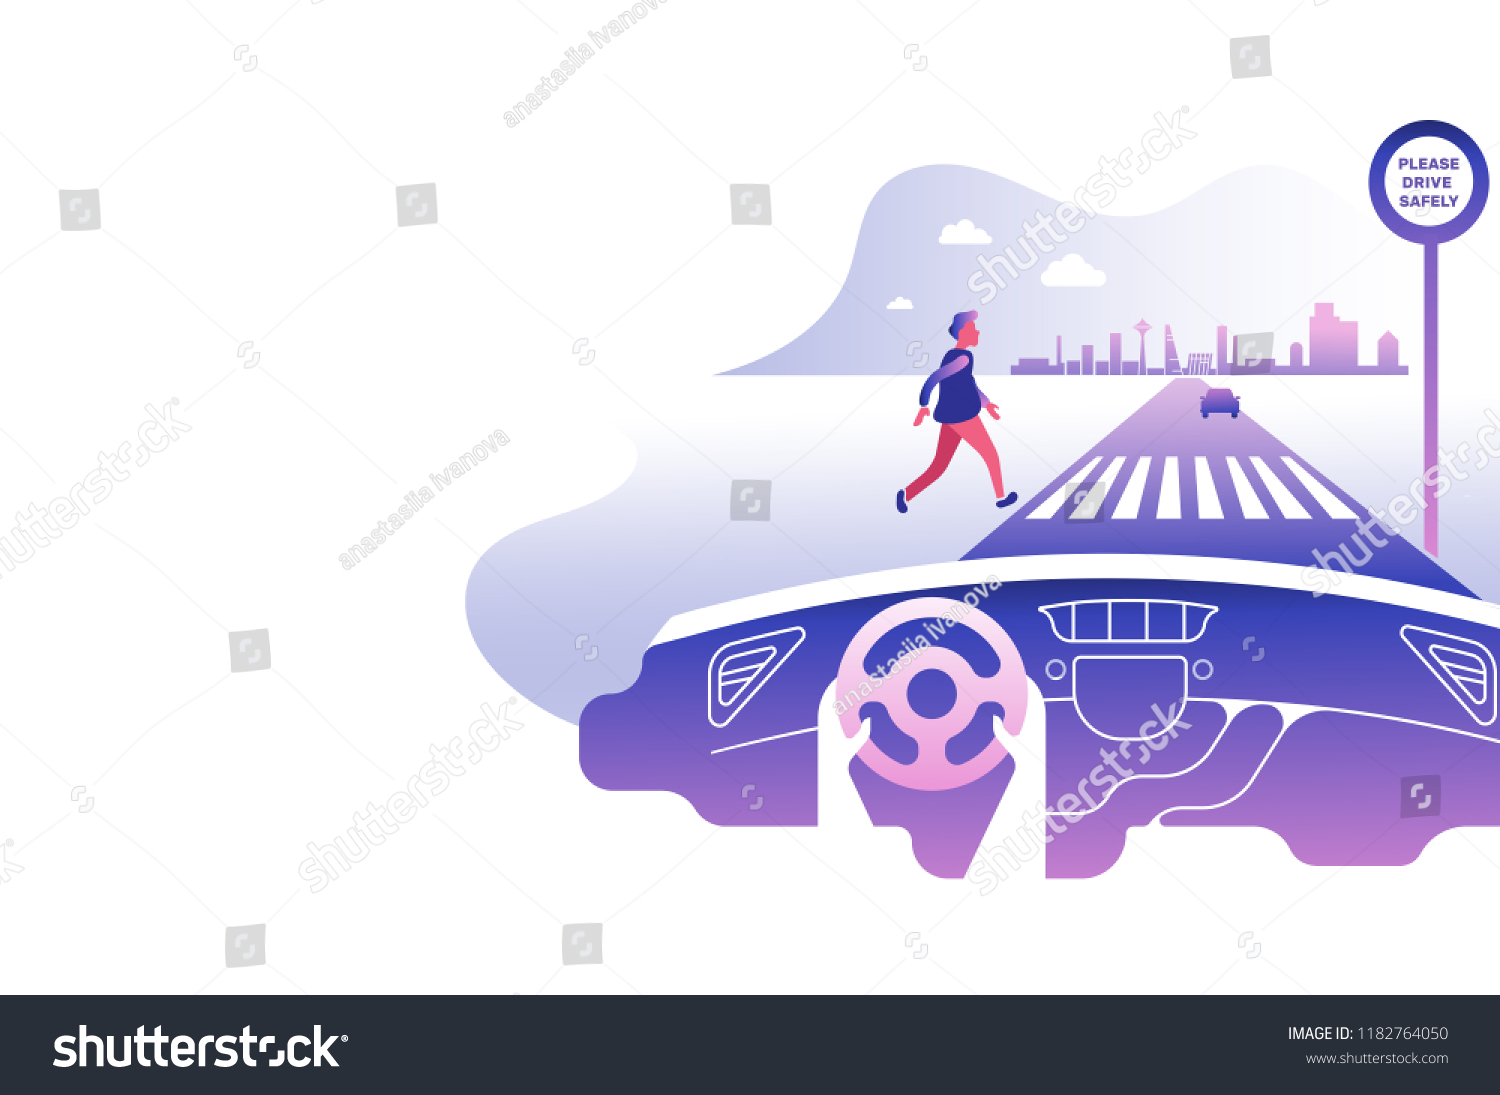 Dashboard car and driver.Hands driving a car on the highway. Drive safely warning billboard.Flat vector illustration. Car on asphalt road with speed limit on highway car interior.Gradient background